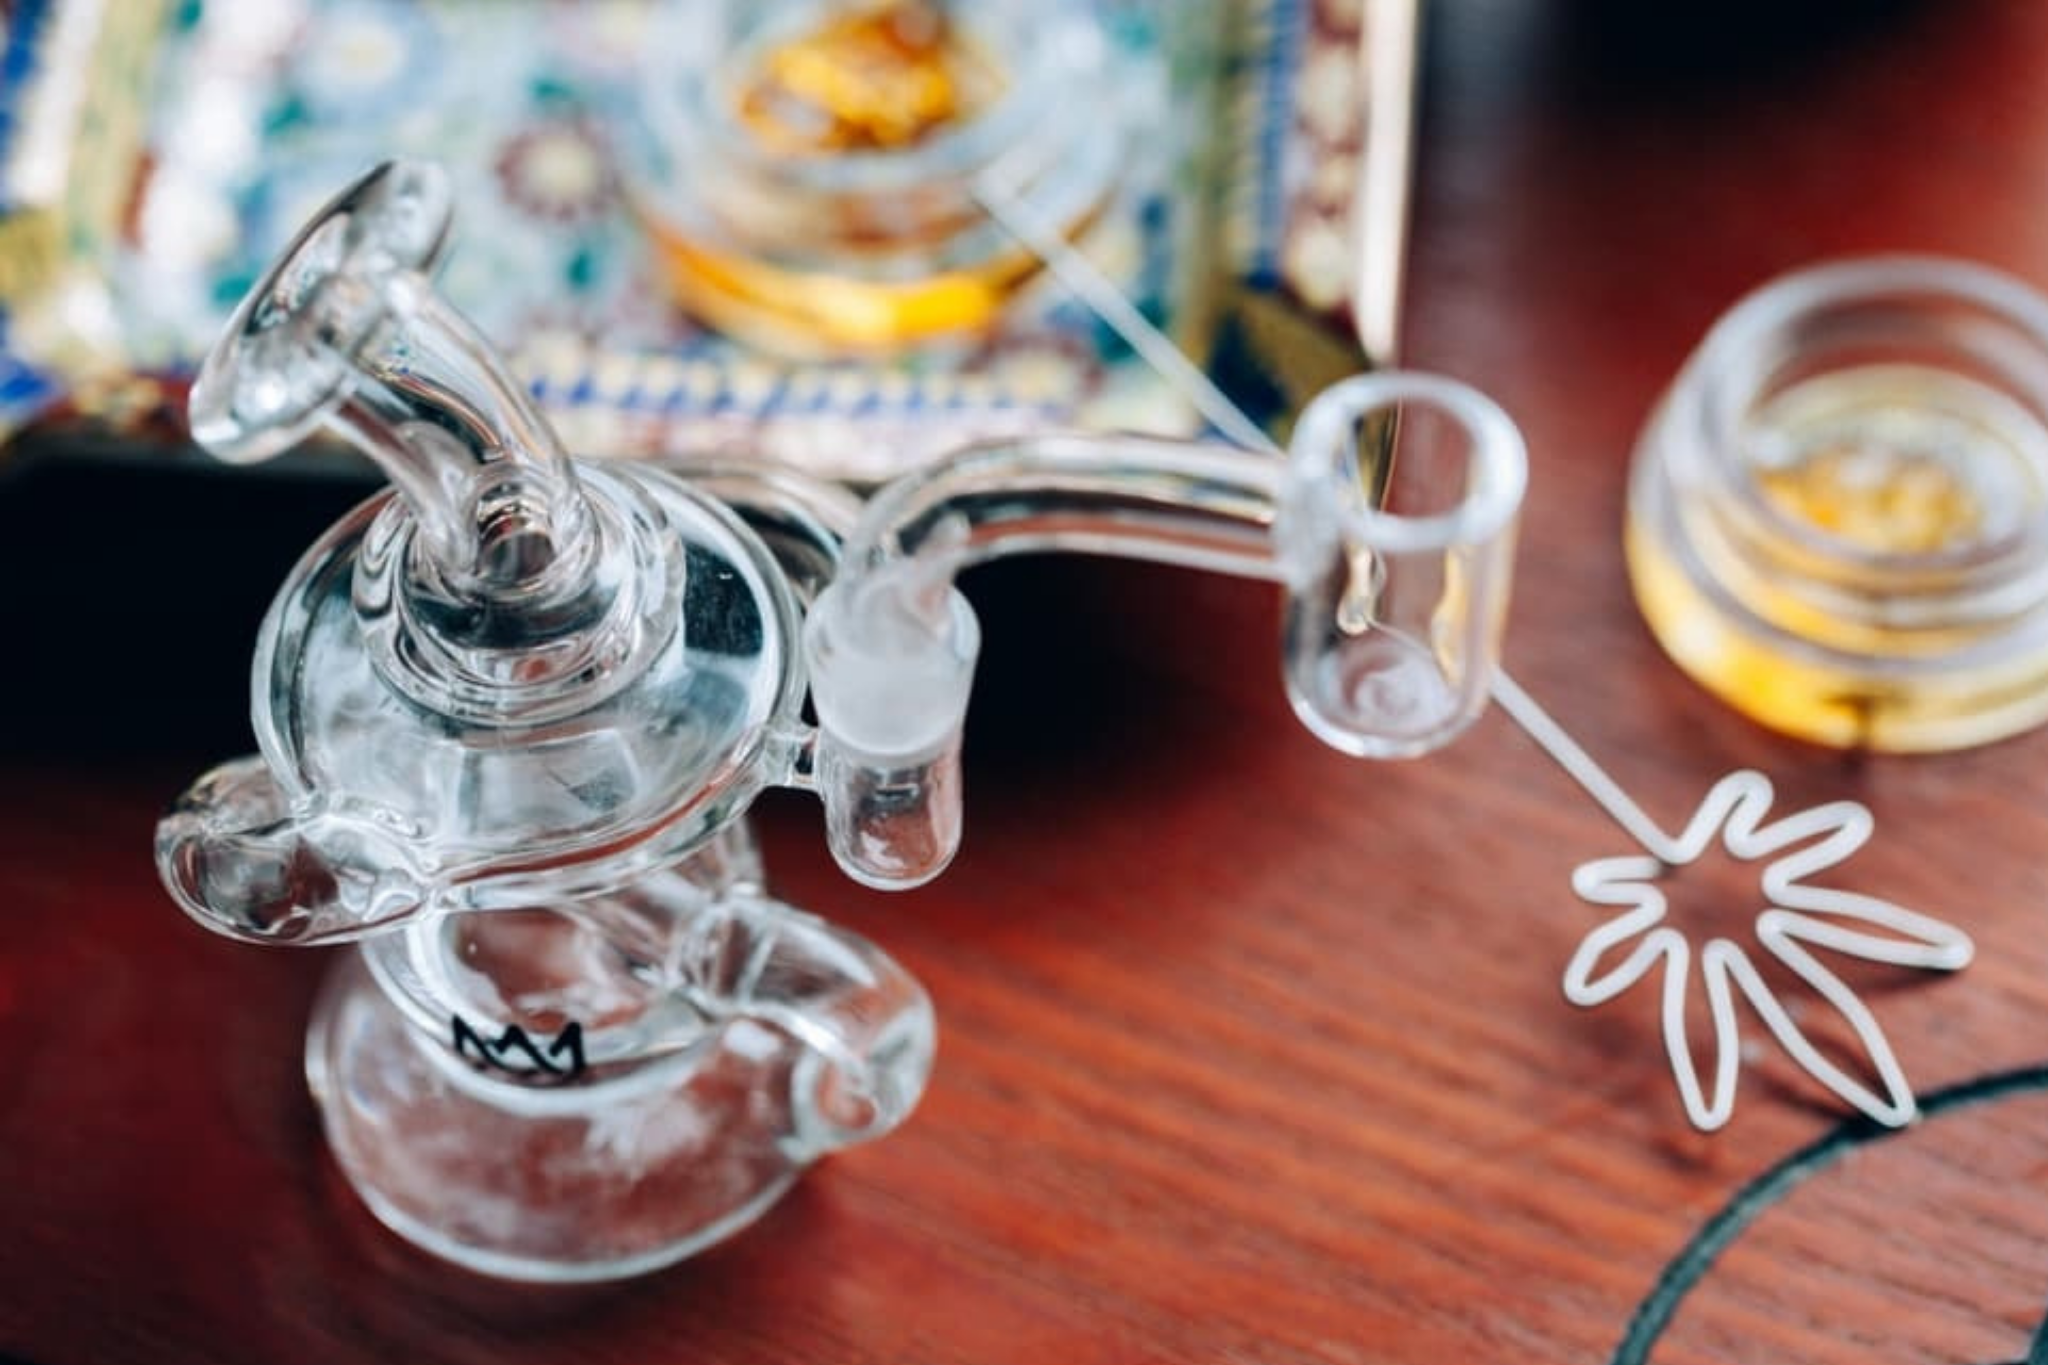 Celebrate 710 with a New Dab Rig!